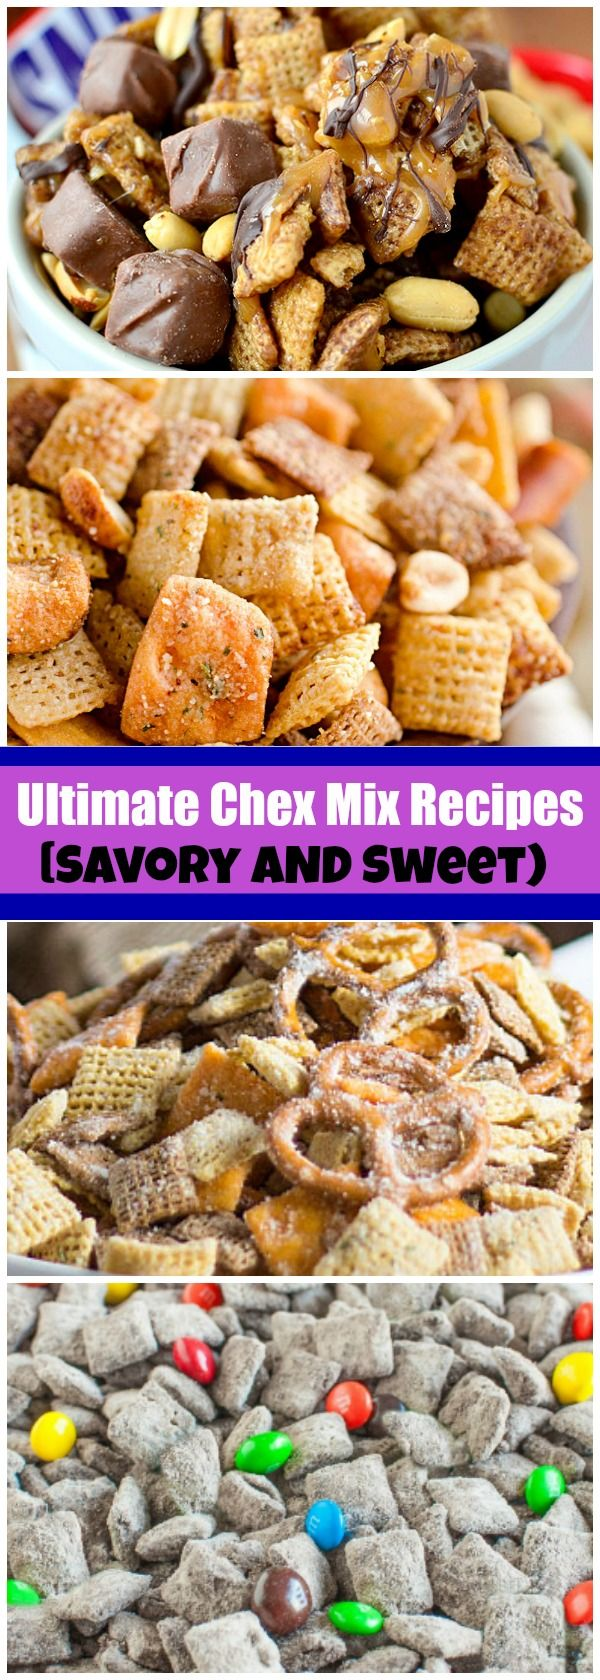 the-ultimate-savory-and-sweet-chex-mix-recipes